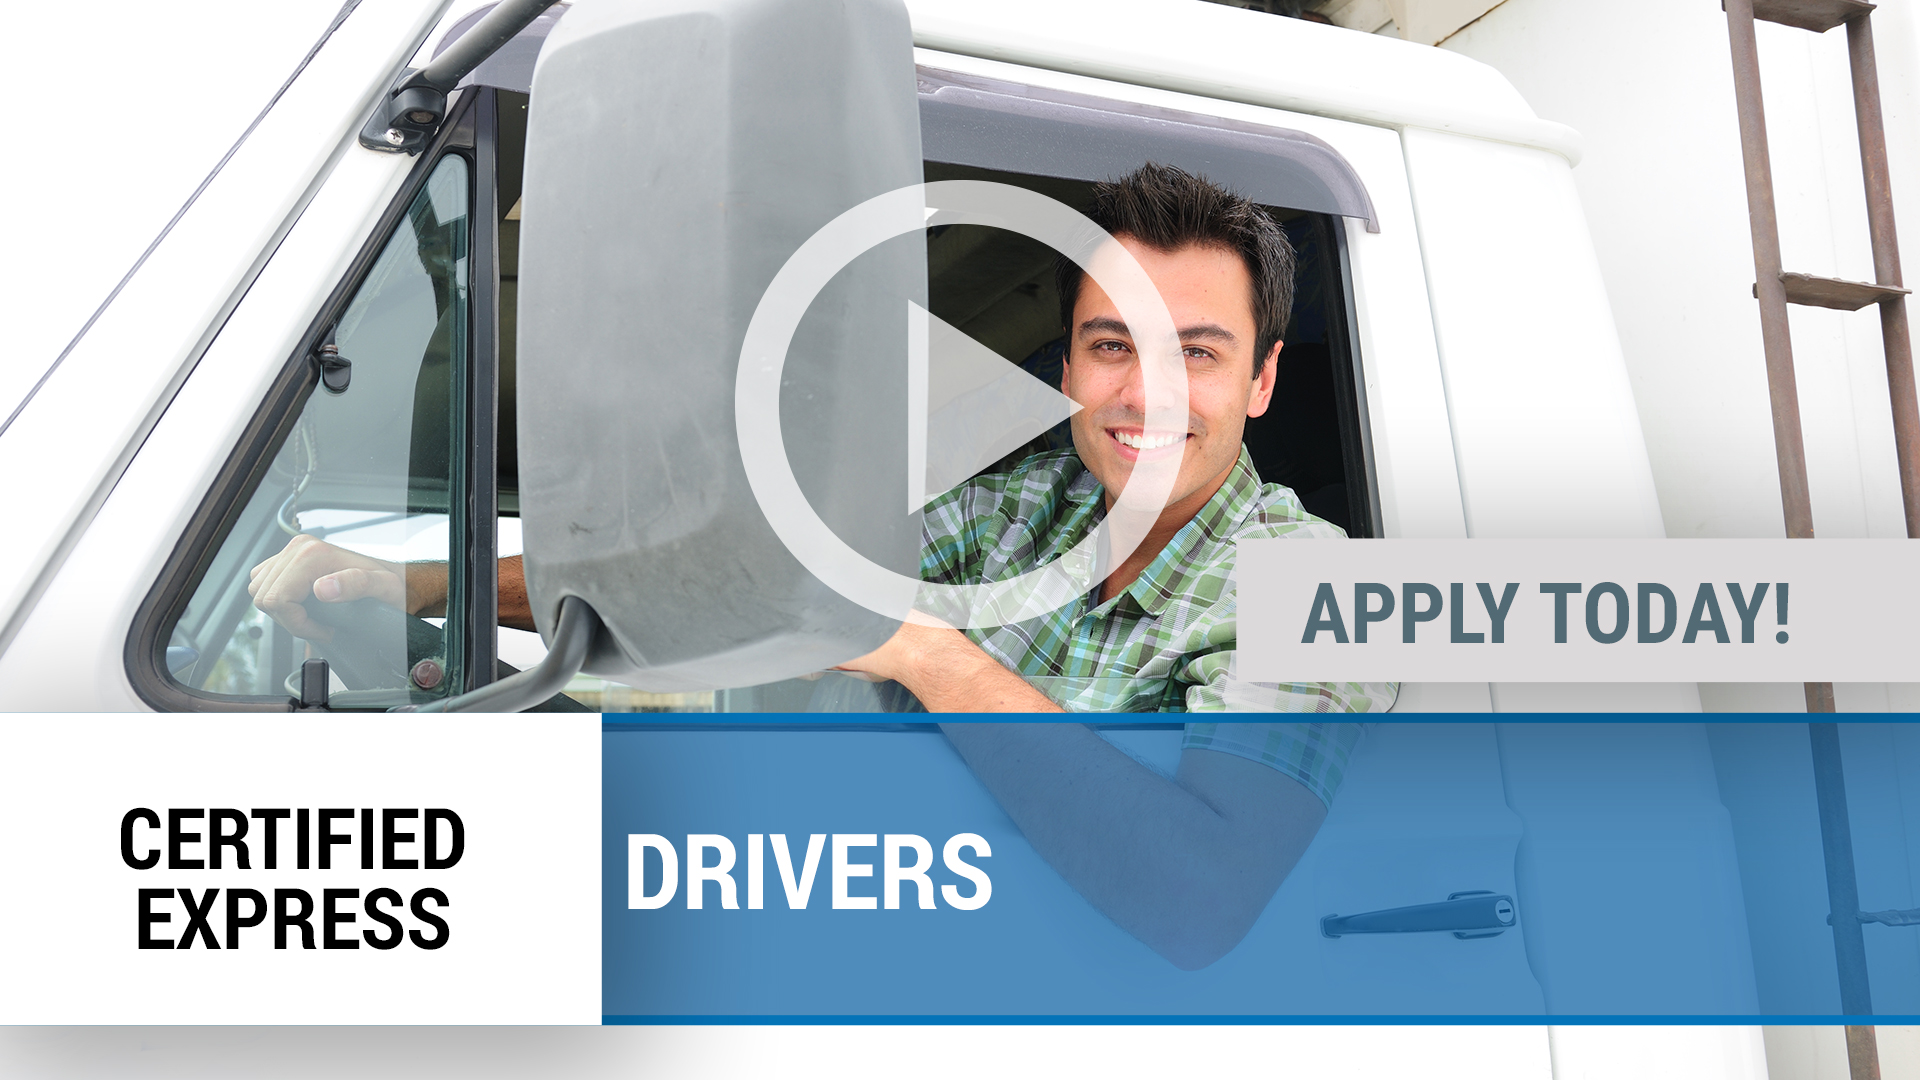 Watch our careers video for available job opening DRIVERS in Joplin, MO